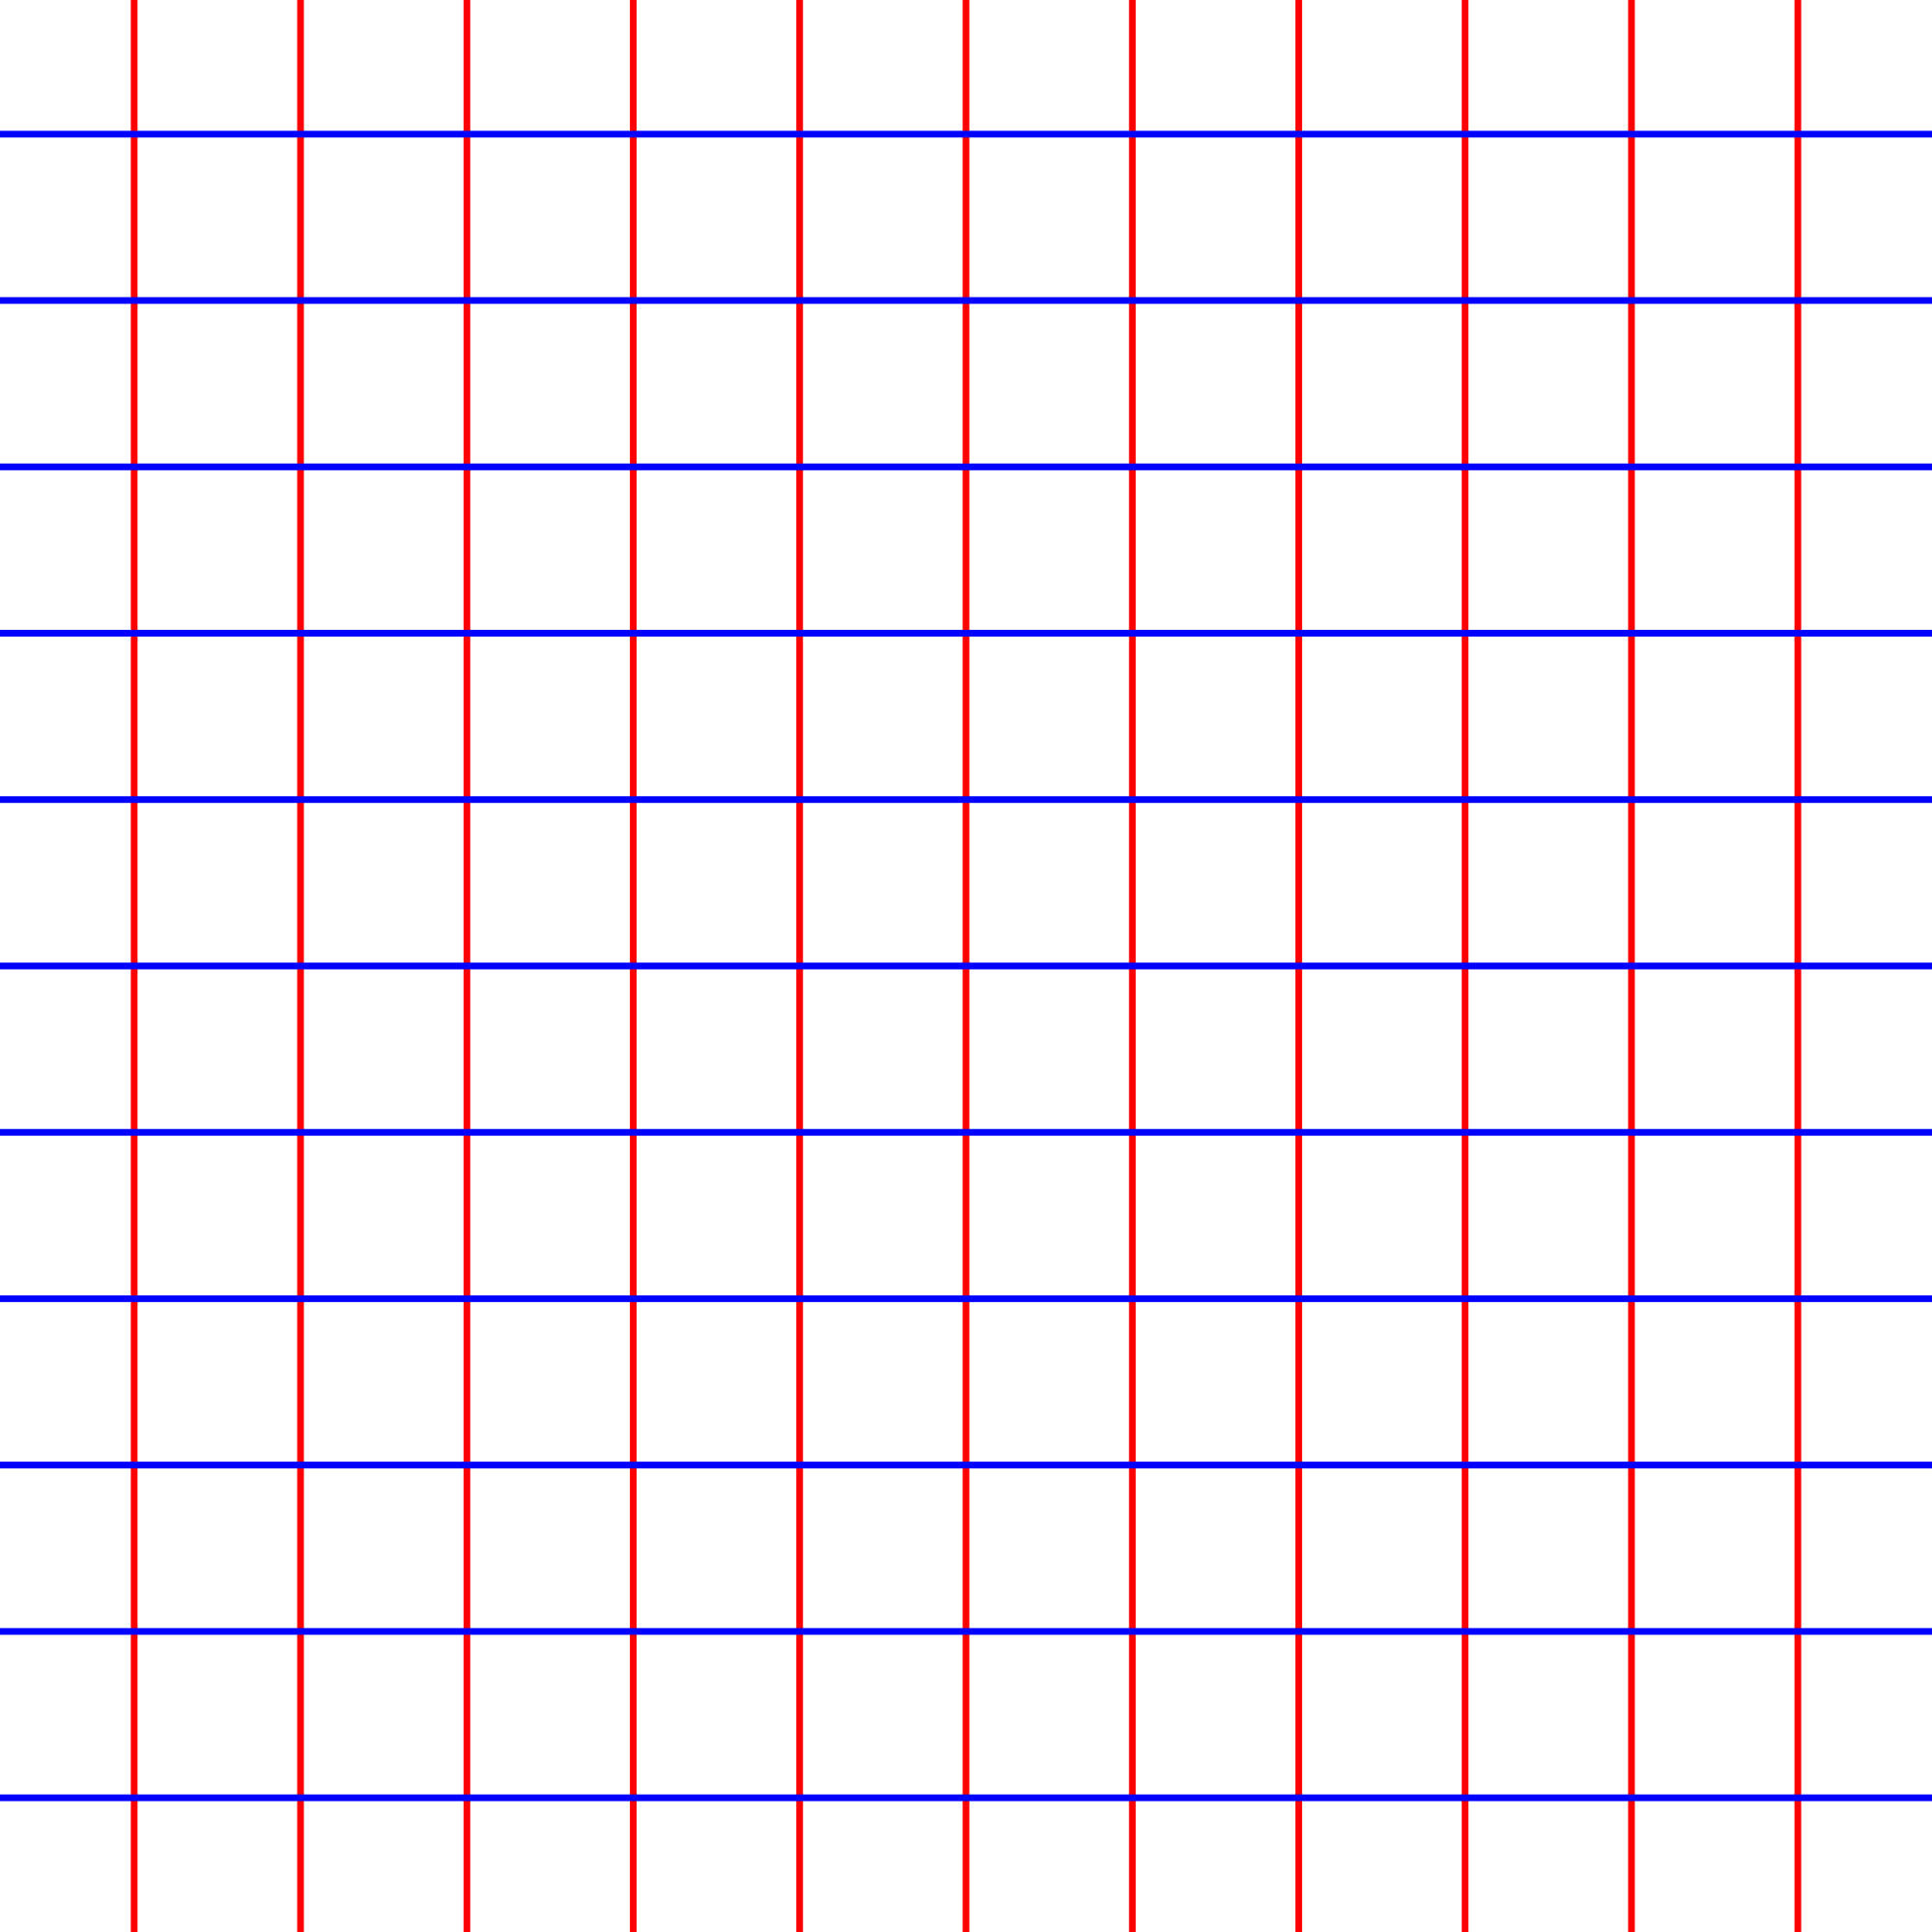 Blue grid png. File conformal before m